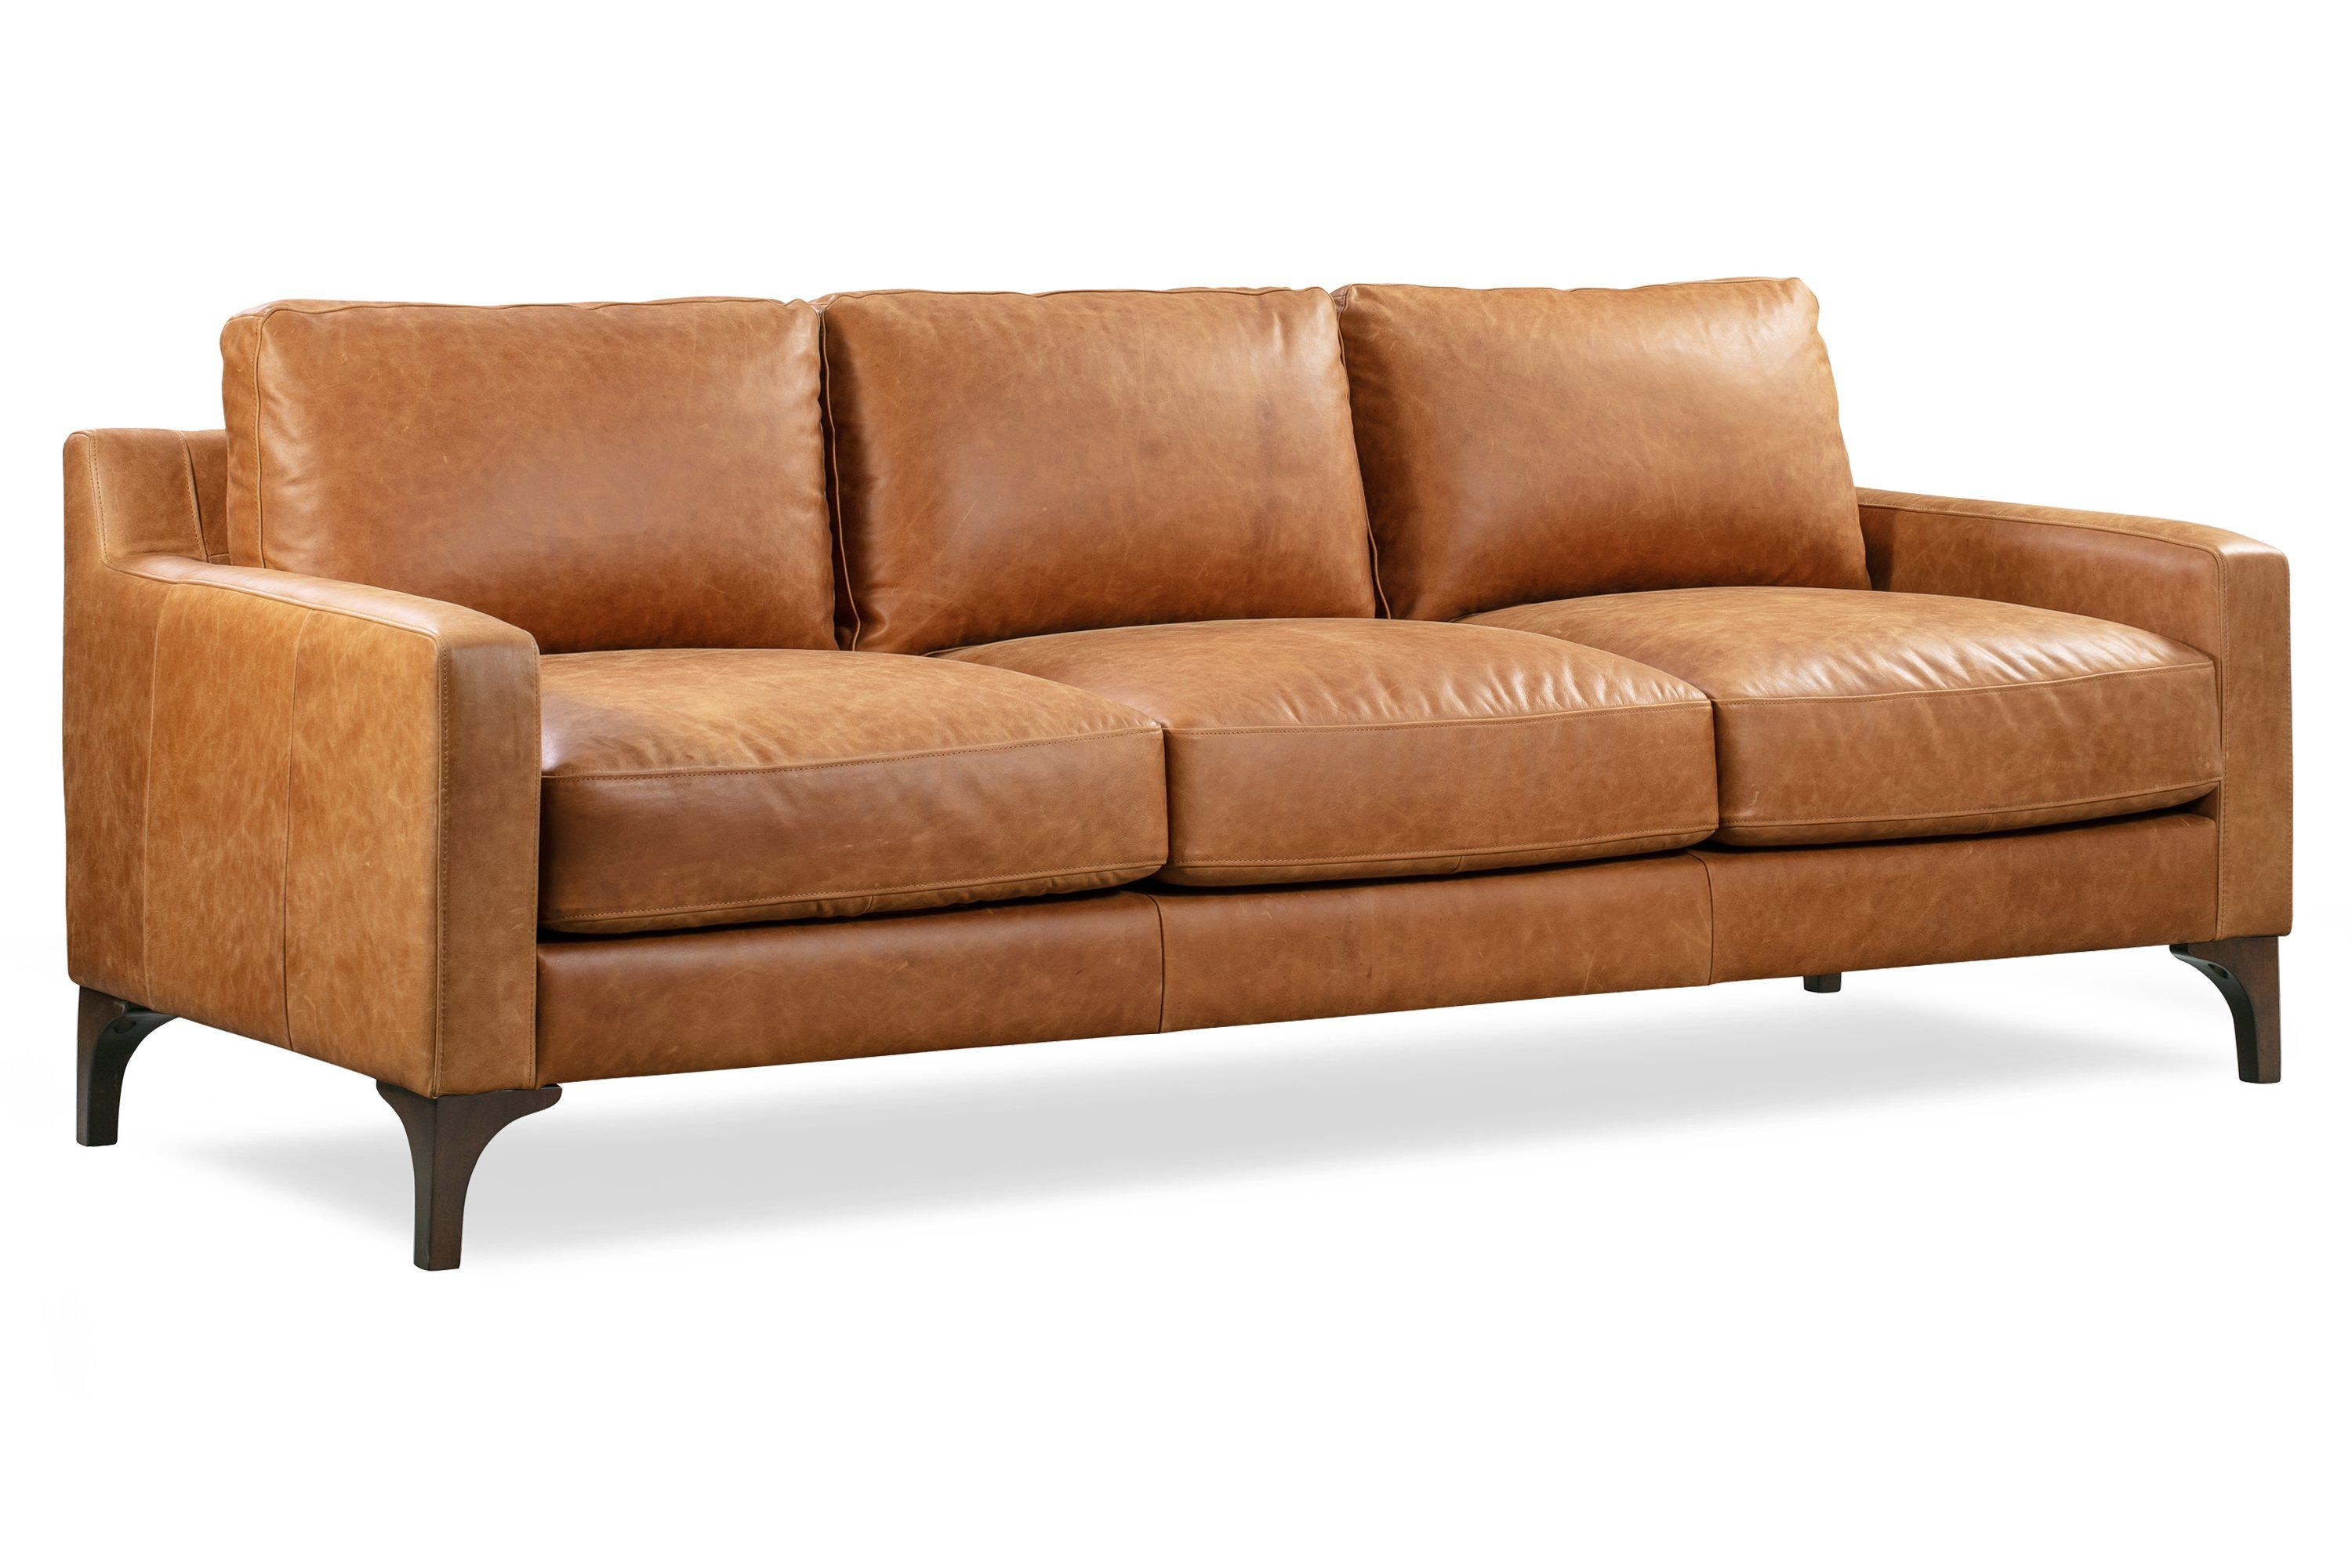 Sorrento Sofa In 2020 Leather Sofa Leather Tan Leather Couch